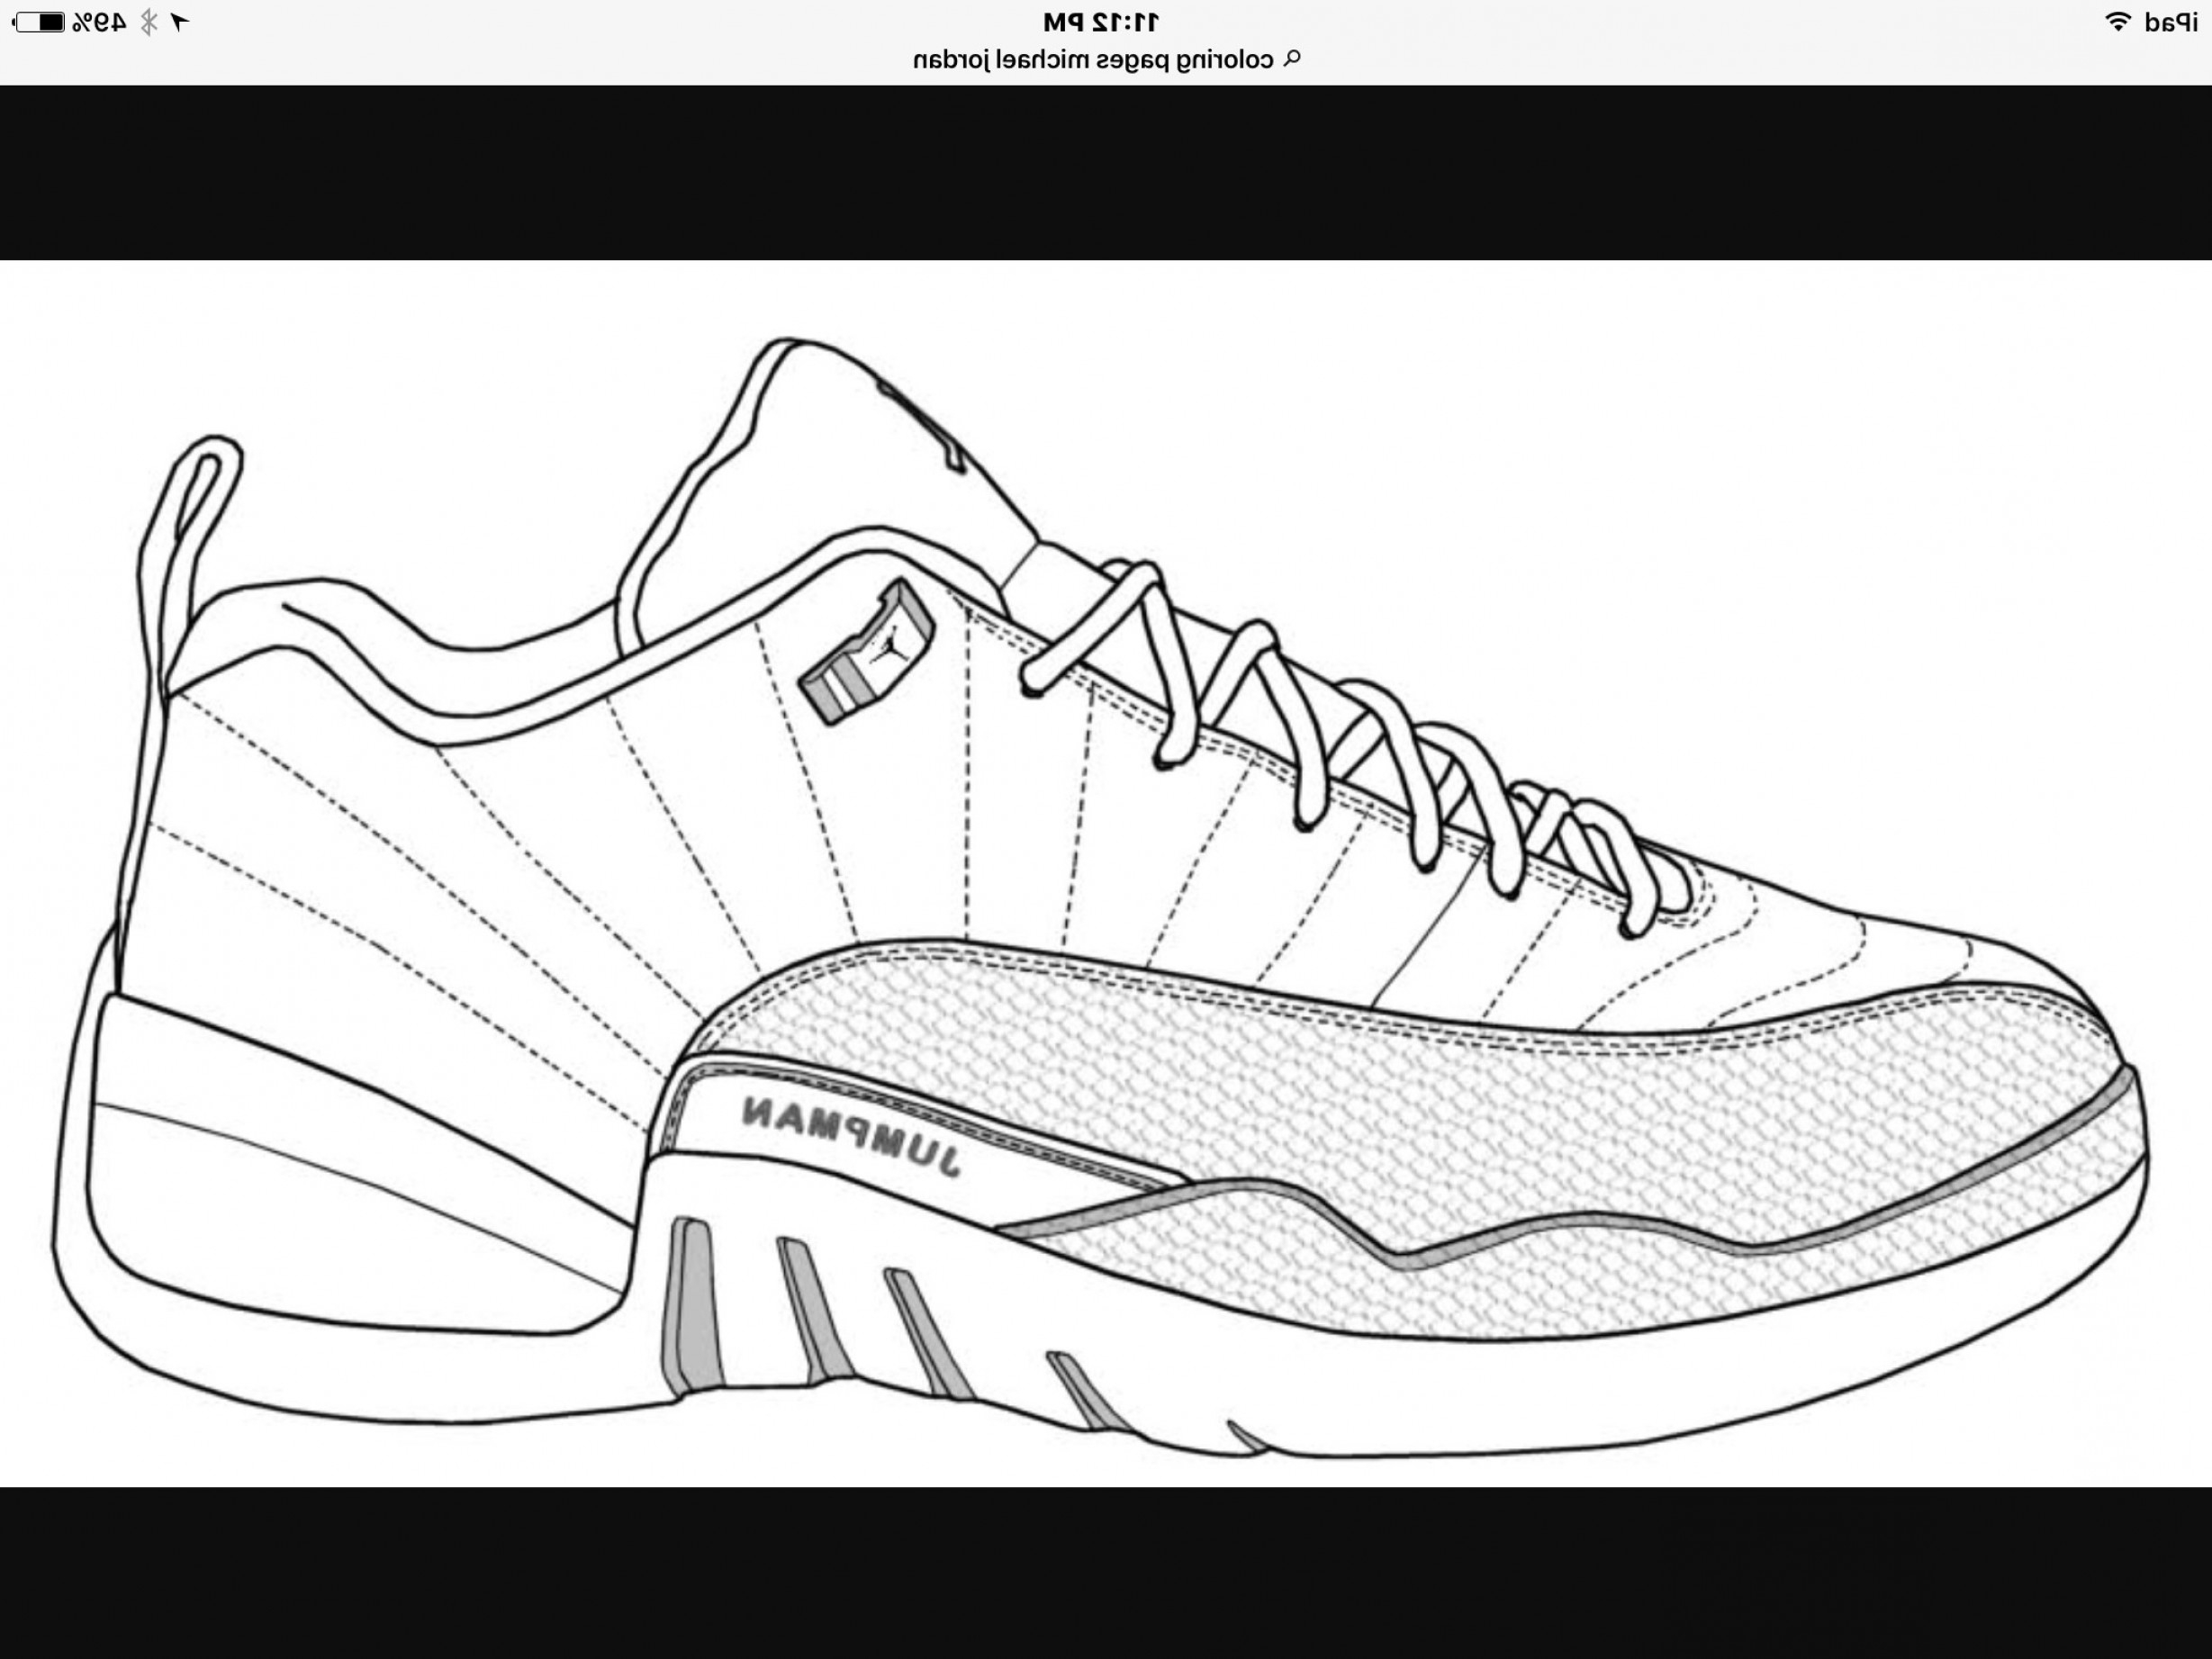 Nike Coloring Pages New Nike Shoes Coloring Pages Colin Bookman